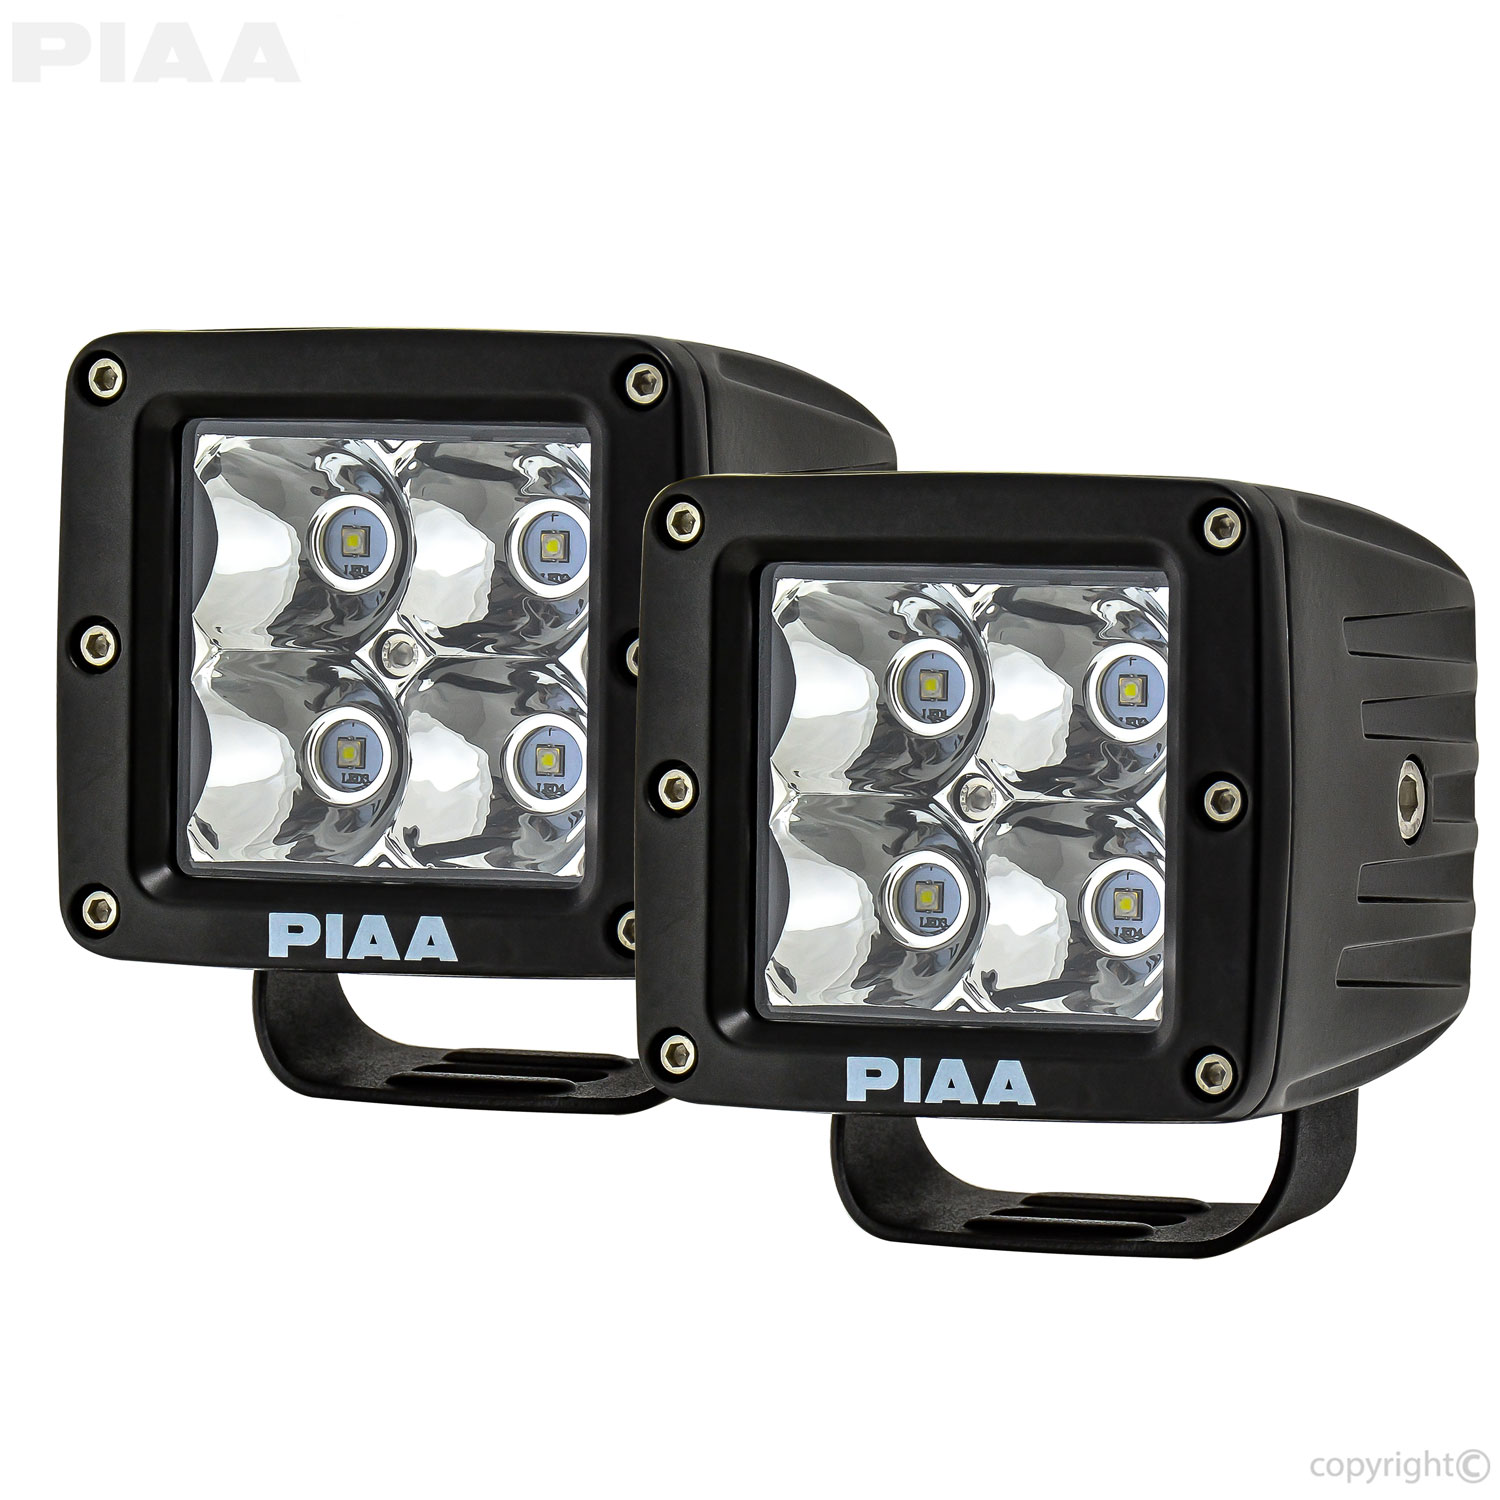 Quad Series Wiring Diagram Trusted Diagrams Cobra 50 Atv Piaa Spot Beam Led Cube Lights W Harness 26 06603